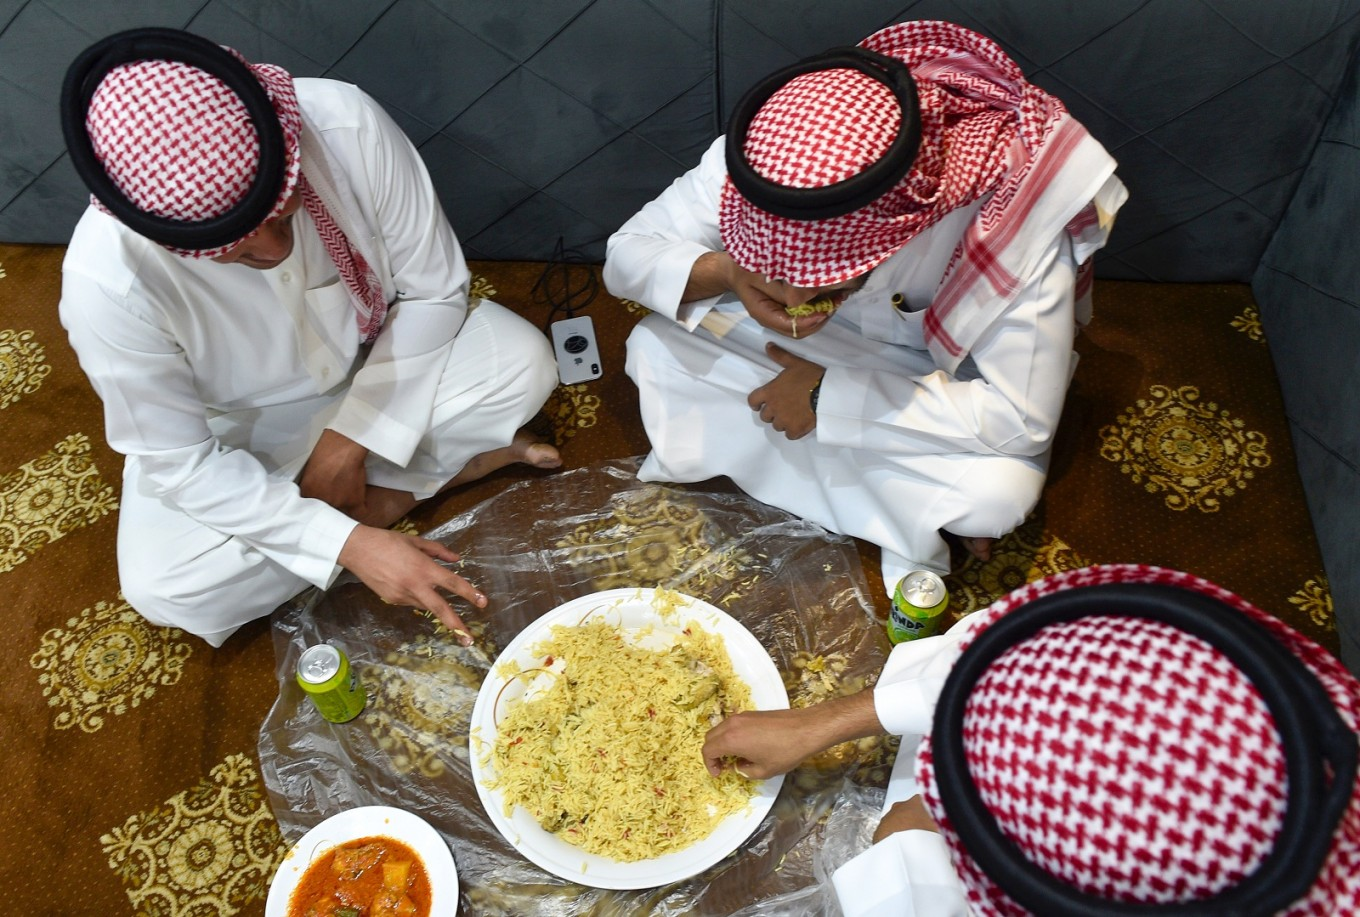 Saudis resist 'throwaway' culture of food waste